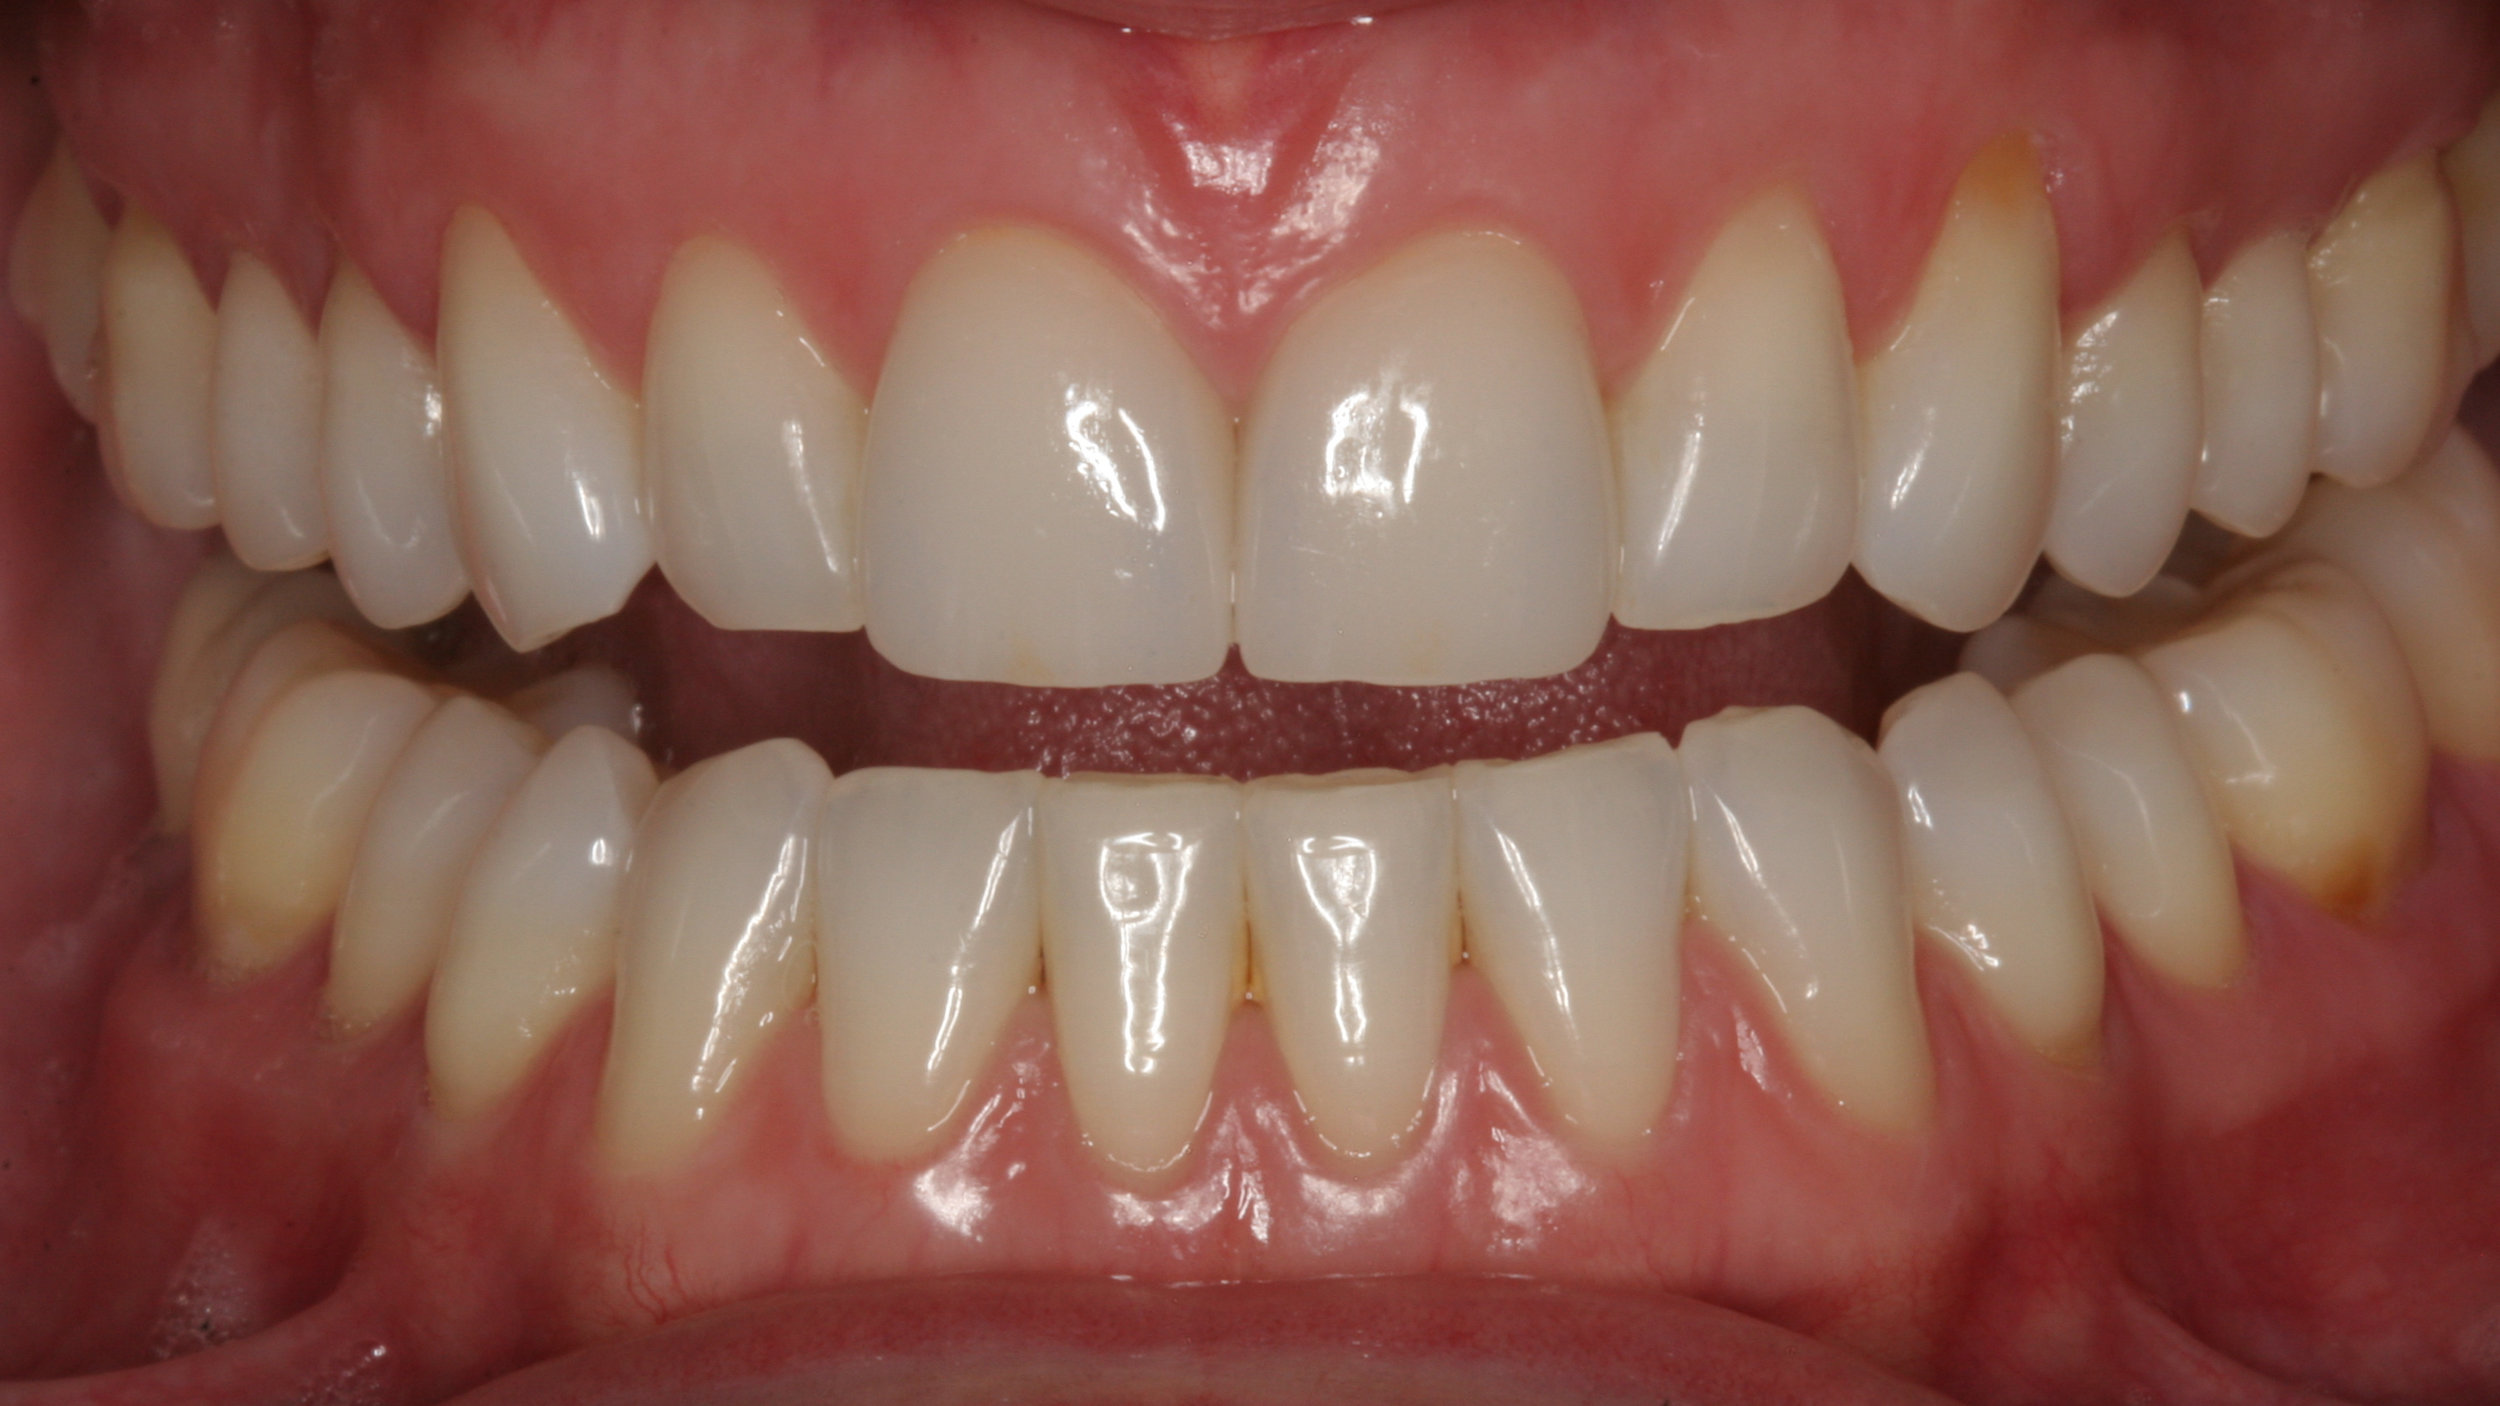 Two porcelain veneers to restore worn teeth by Dr. James Salazar